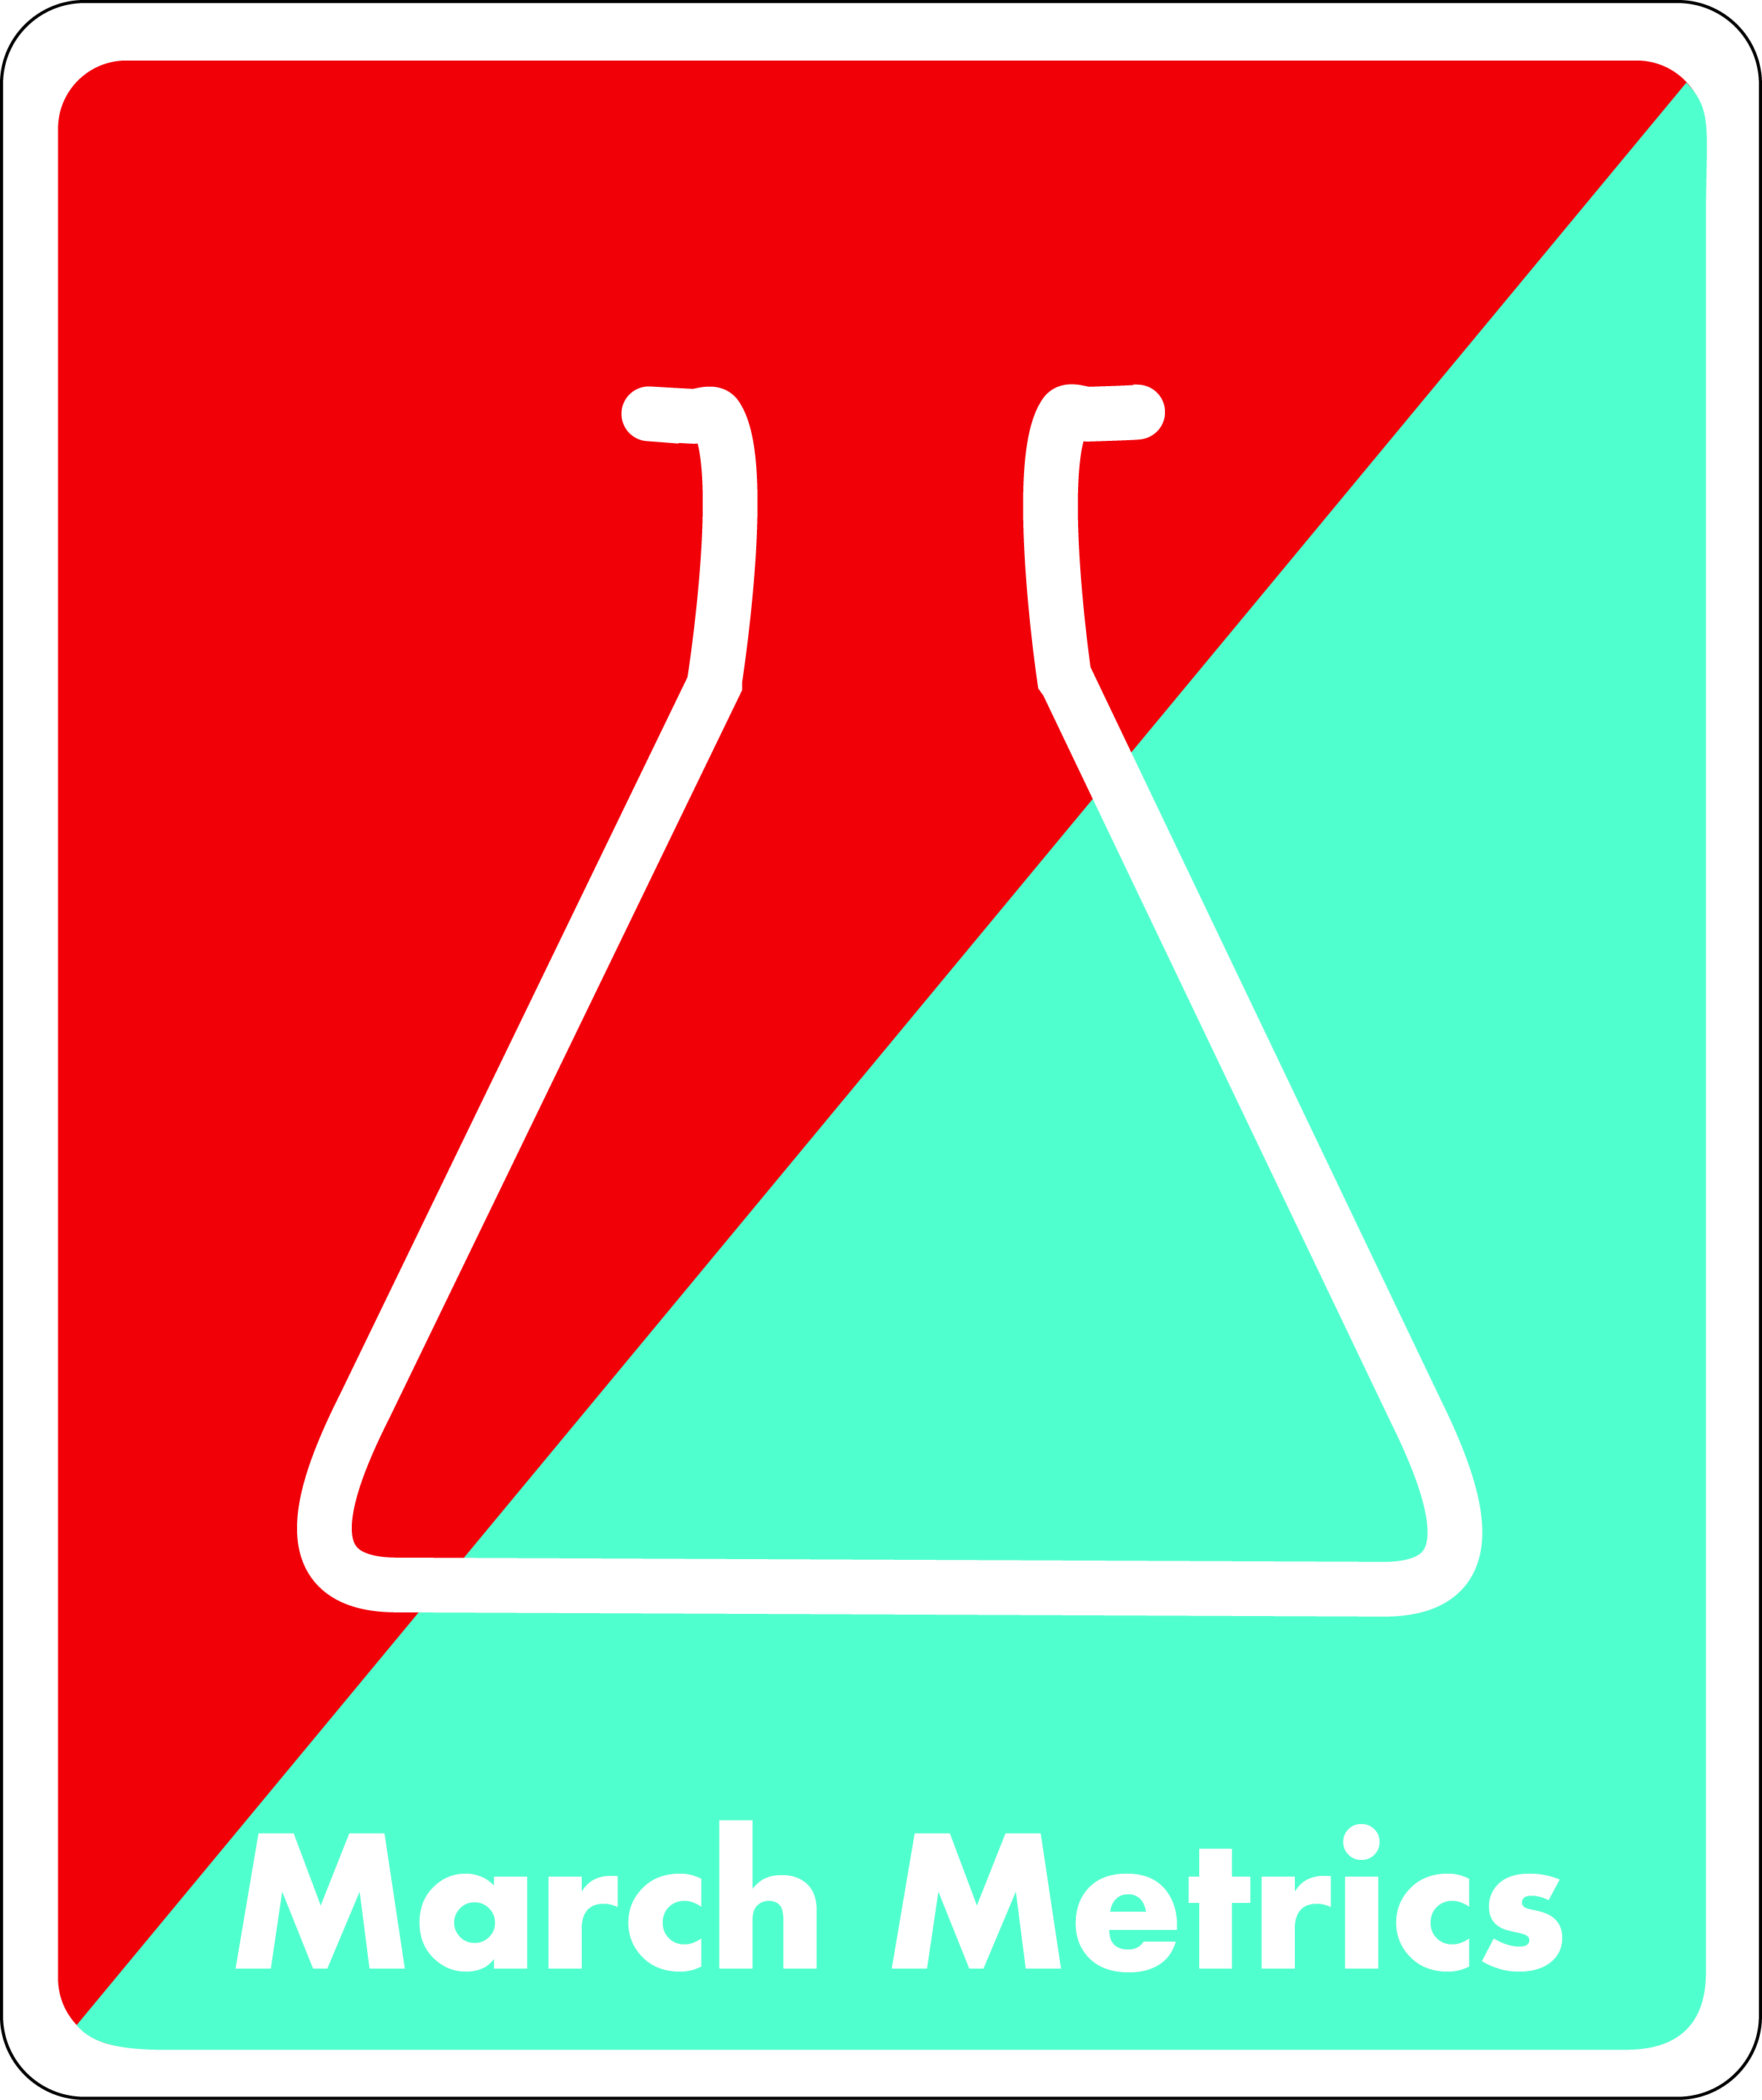 March Metrics! The First Annual World Championship for Scientific Impact | The Science Exchange Blog